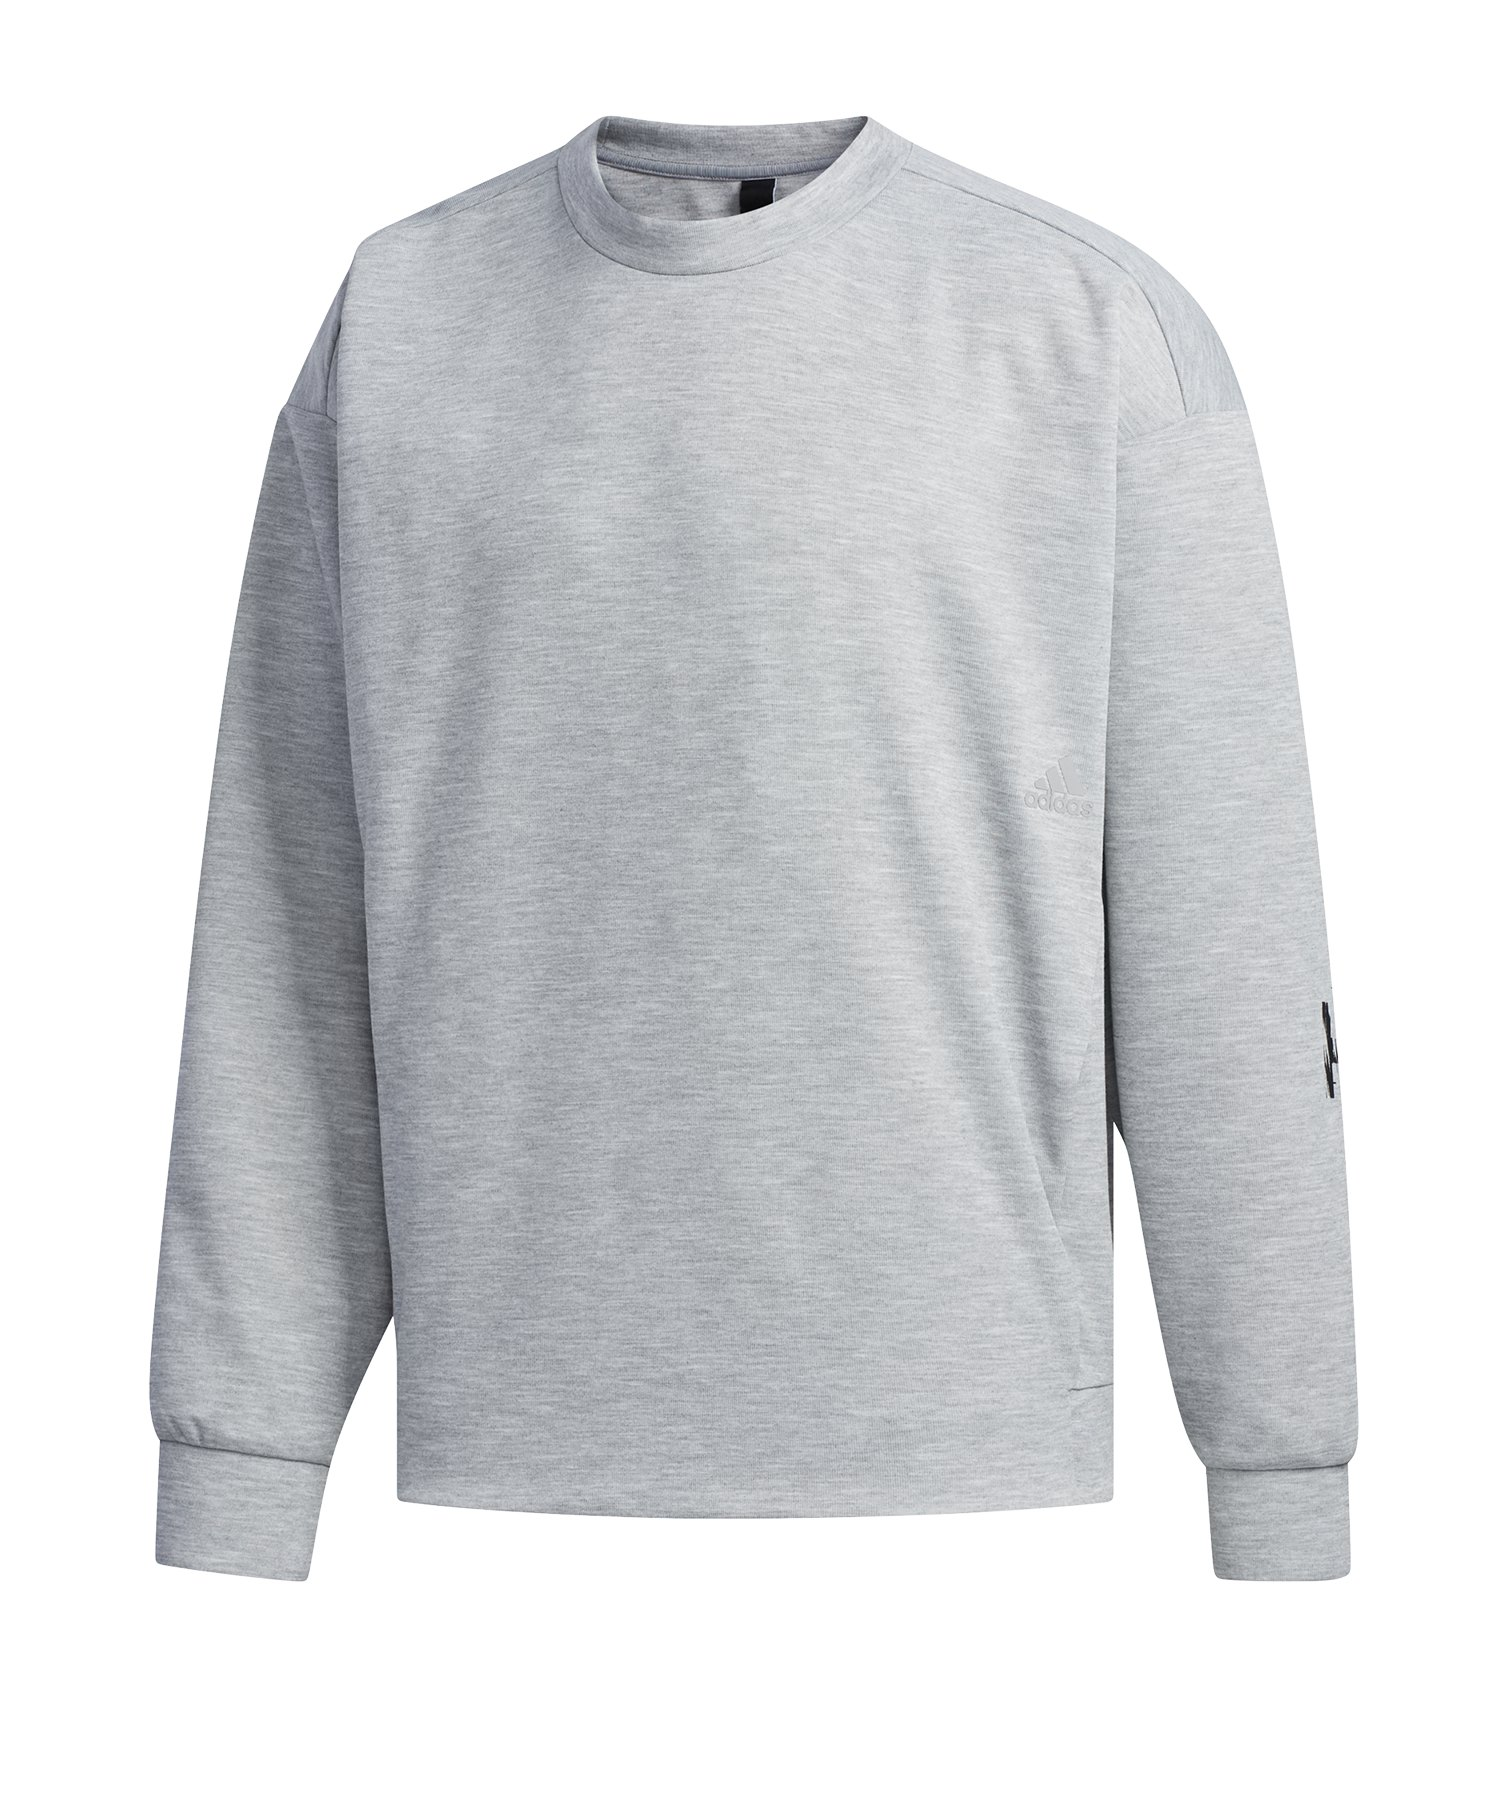 adidas Must Haves Sweatshirt Grau - grau